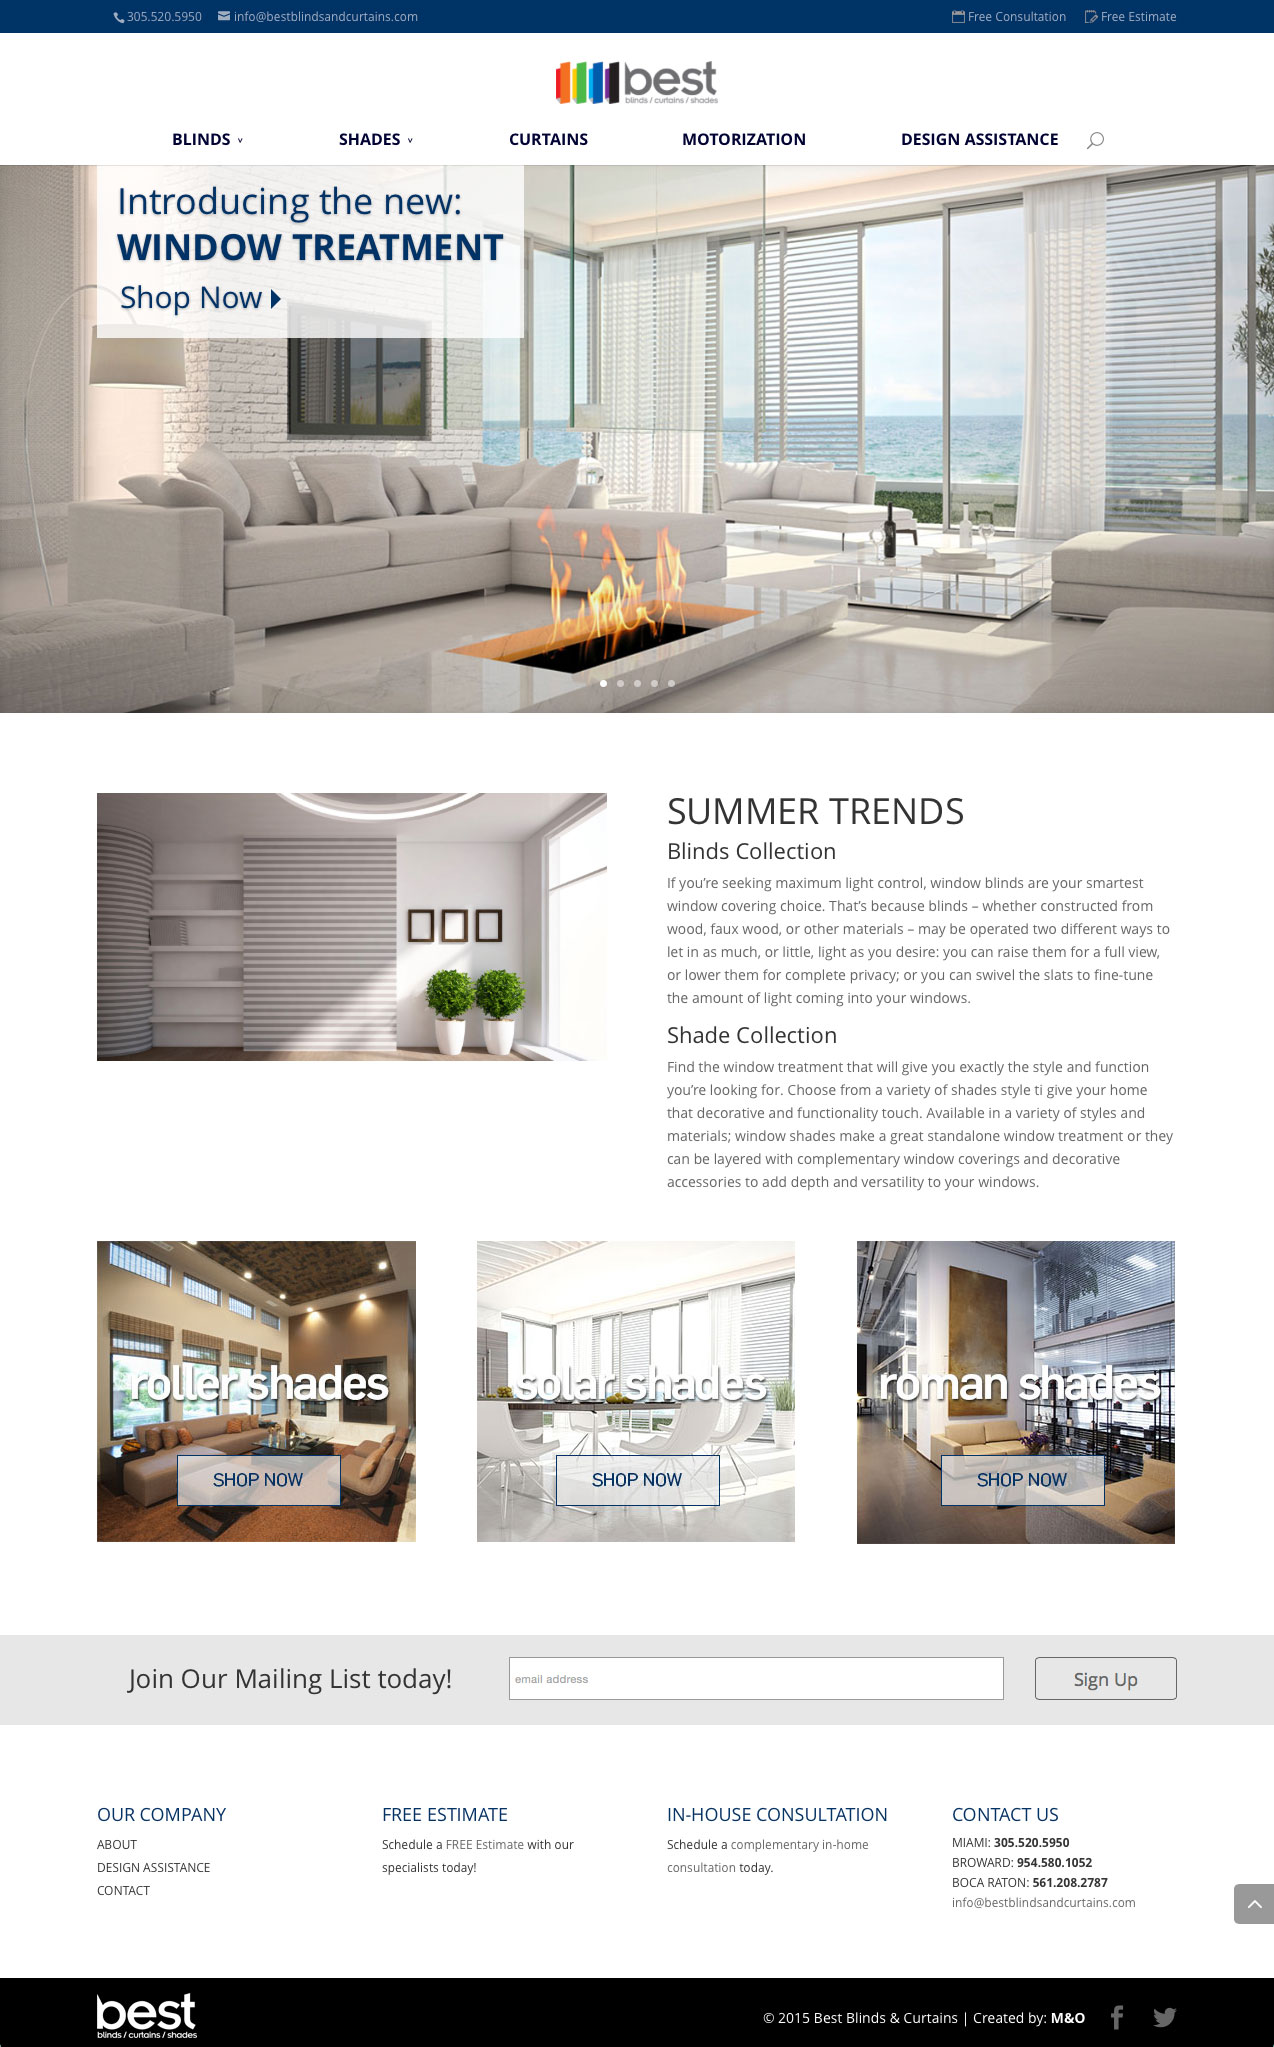 Best Blinds & Curtains - Web Design by M&O